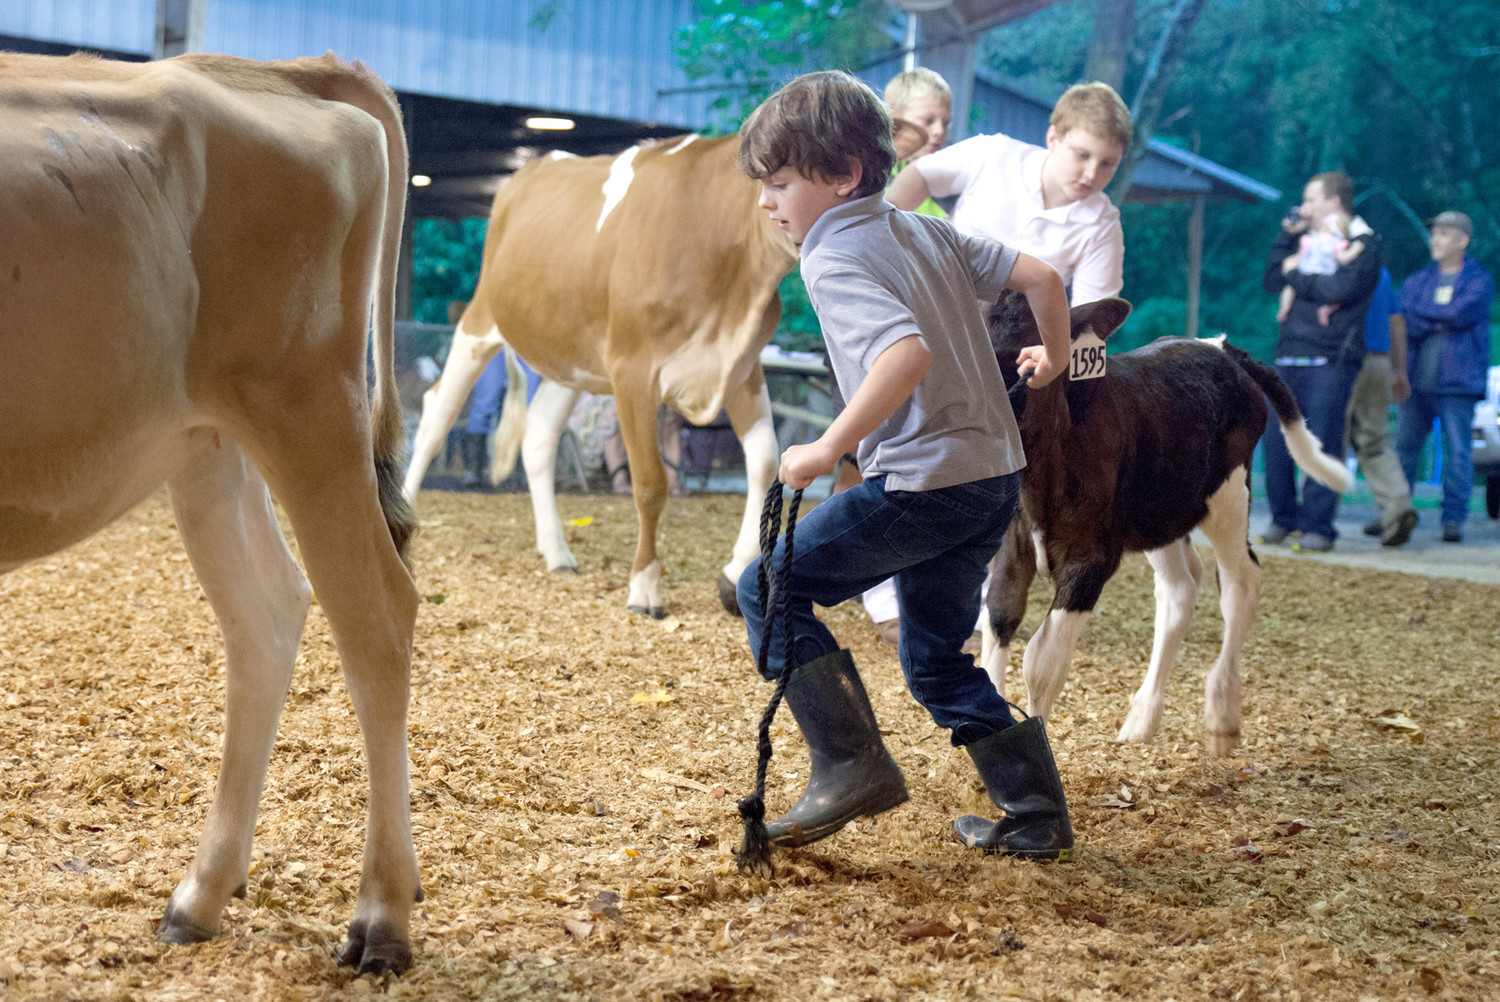 COME OUT AND SHOW community support for the Bradley Central High School and Walker Valley High School 4-H and FFA programs as they present their livestock show on Saturday, June 9, at 6 p.m.